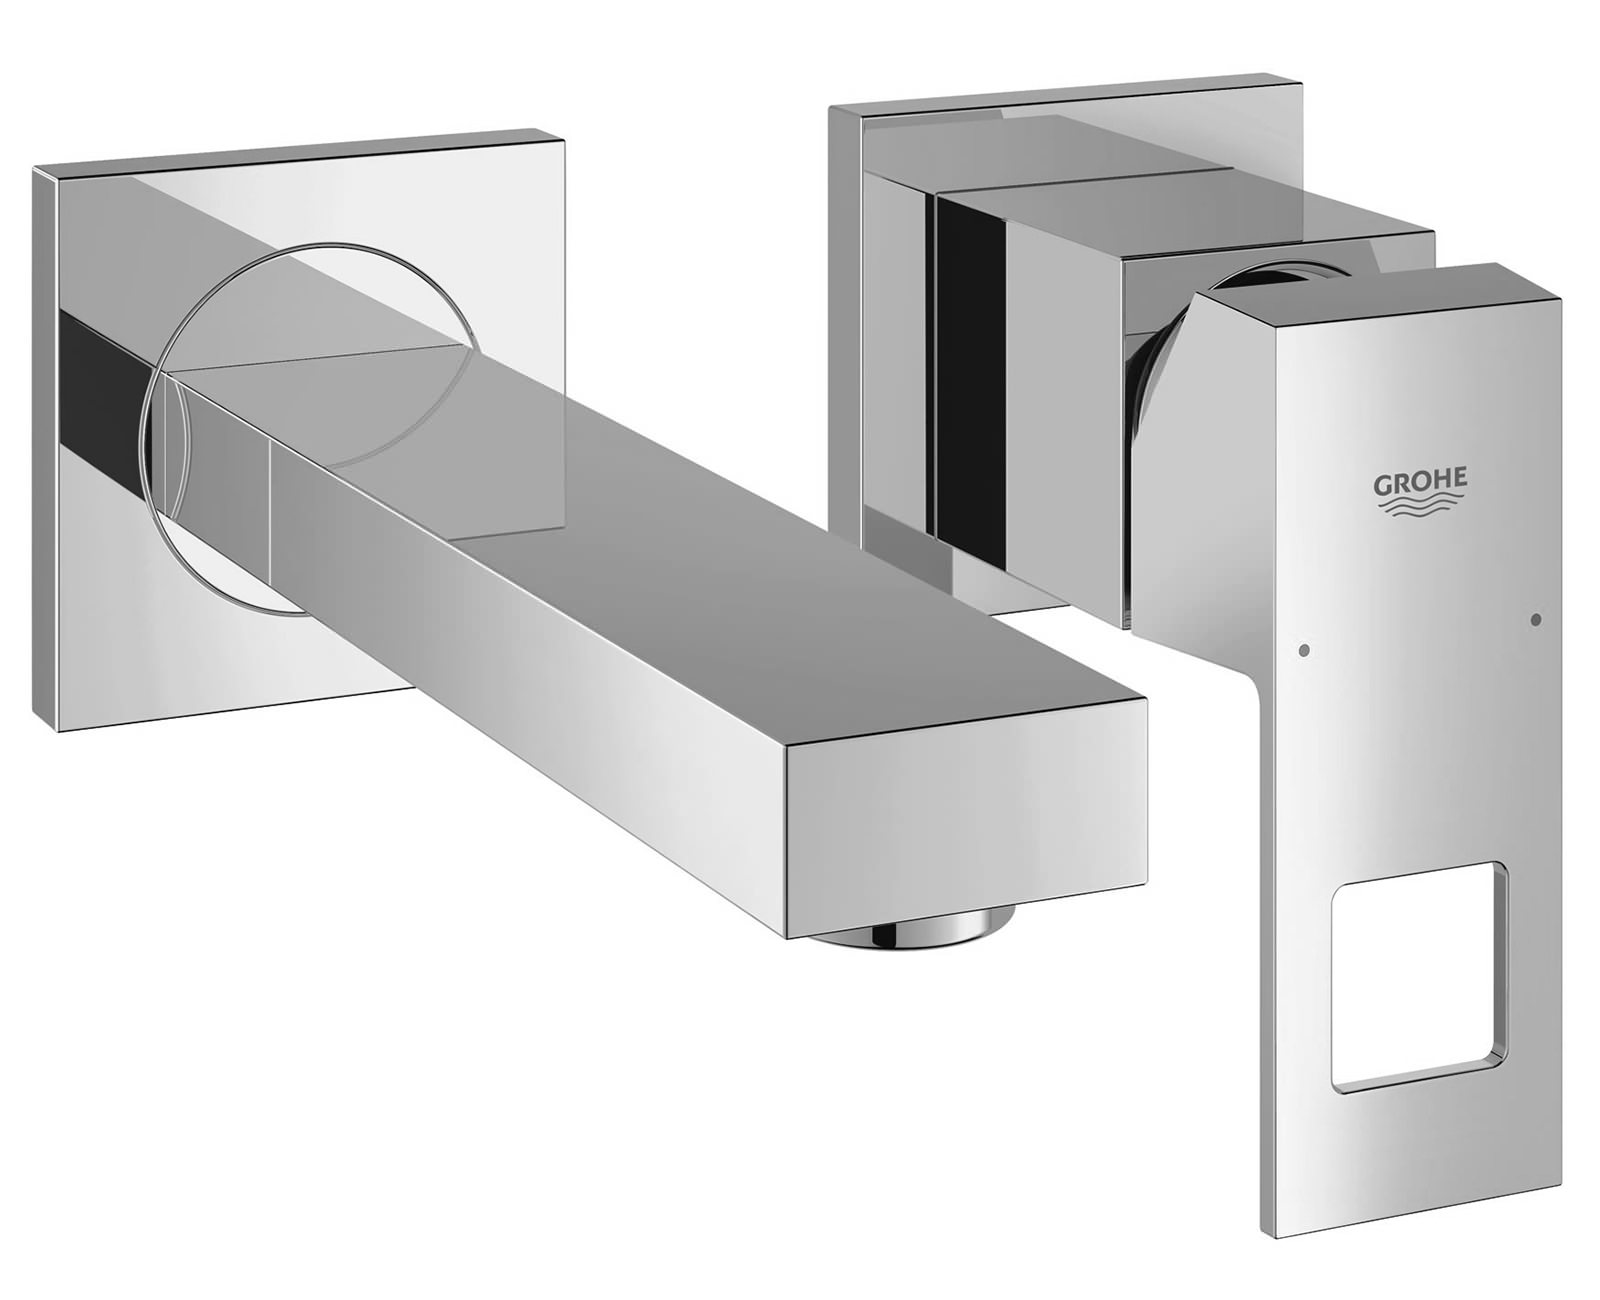 Grohe Eurocube Wall Mounted 2 Hole Basin Mixer Tap